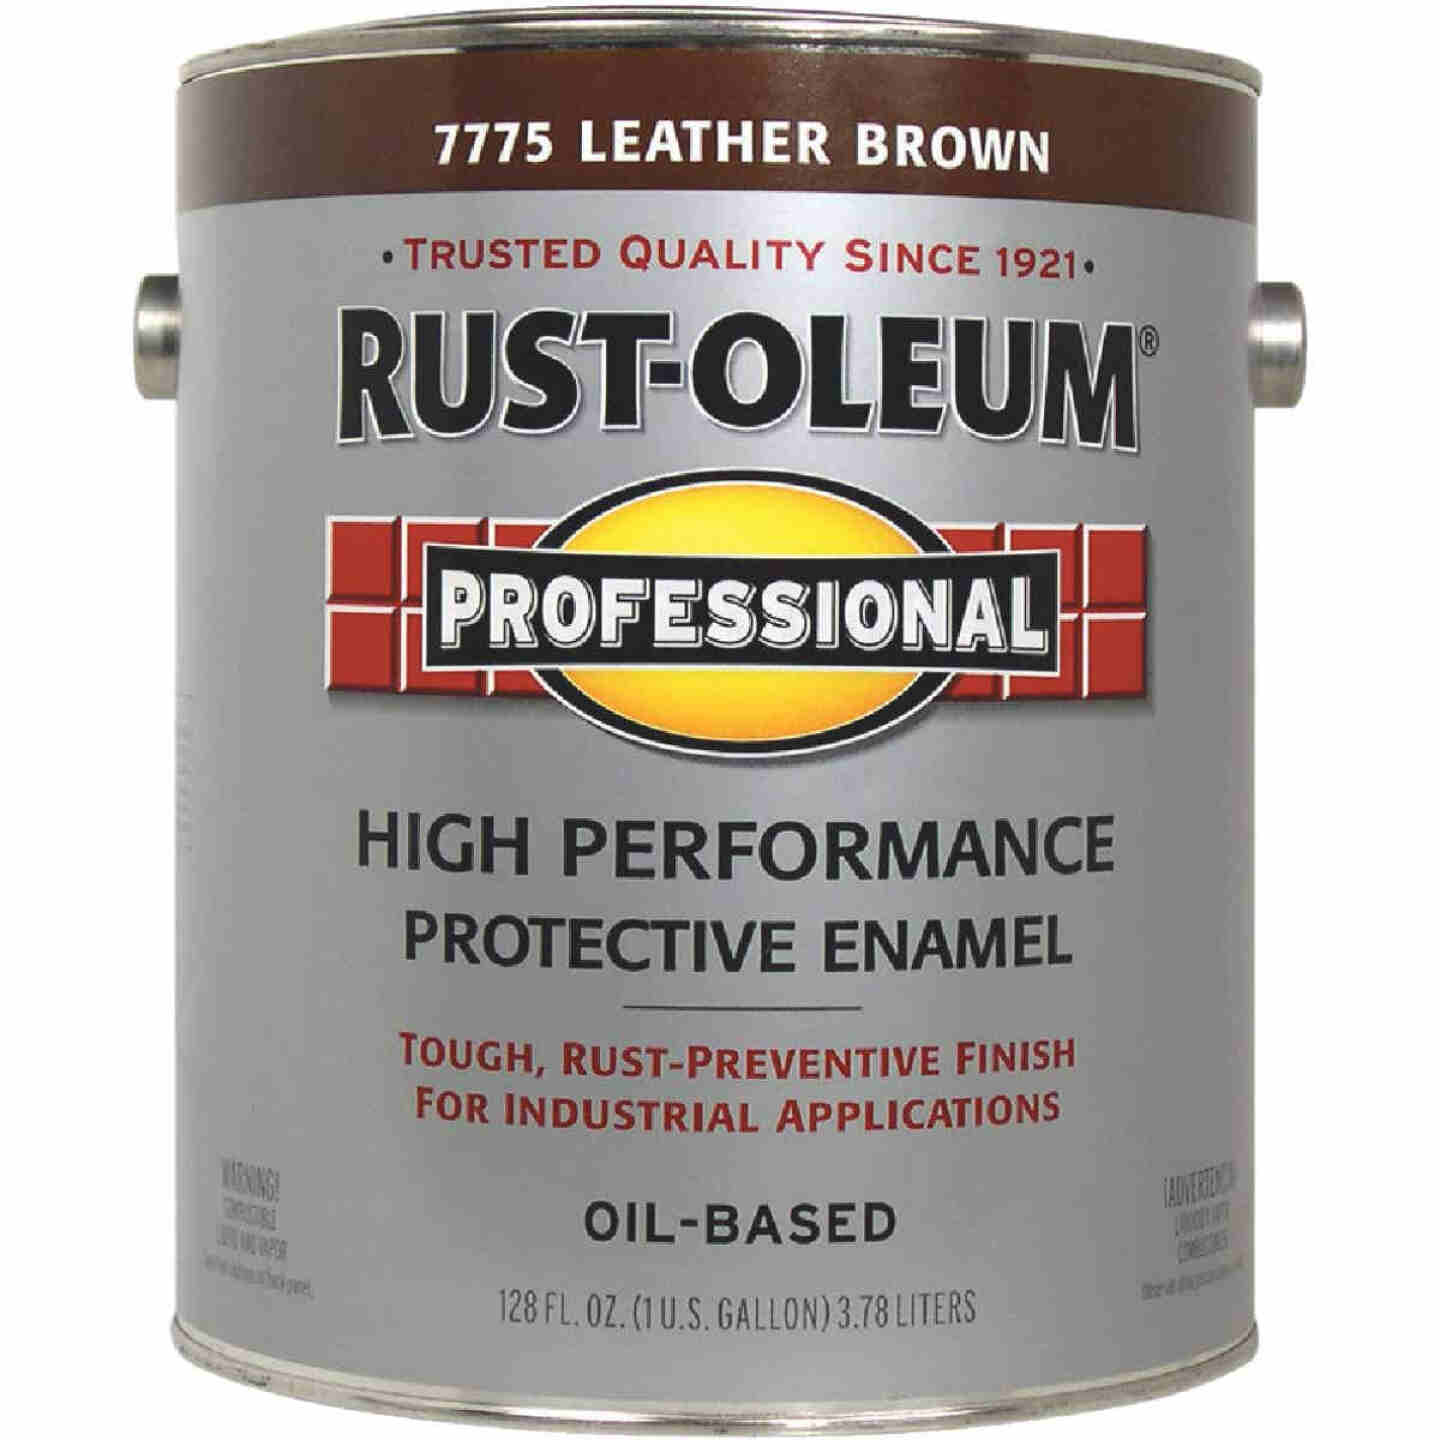 Rust-Oleum Professional Oil-Based Gloss VOC Formula Rust Control Enamel, Leather Brown, 1 Gal. Image 1